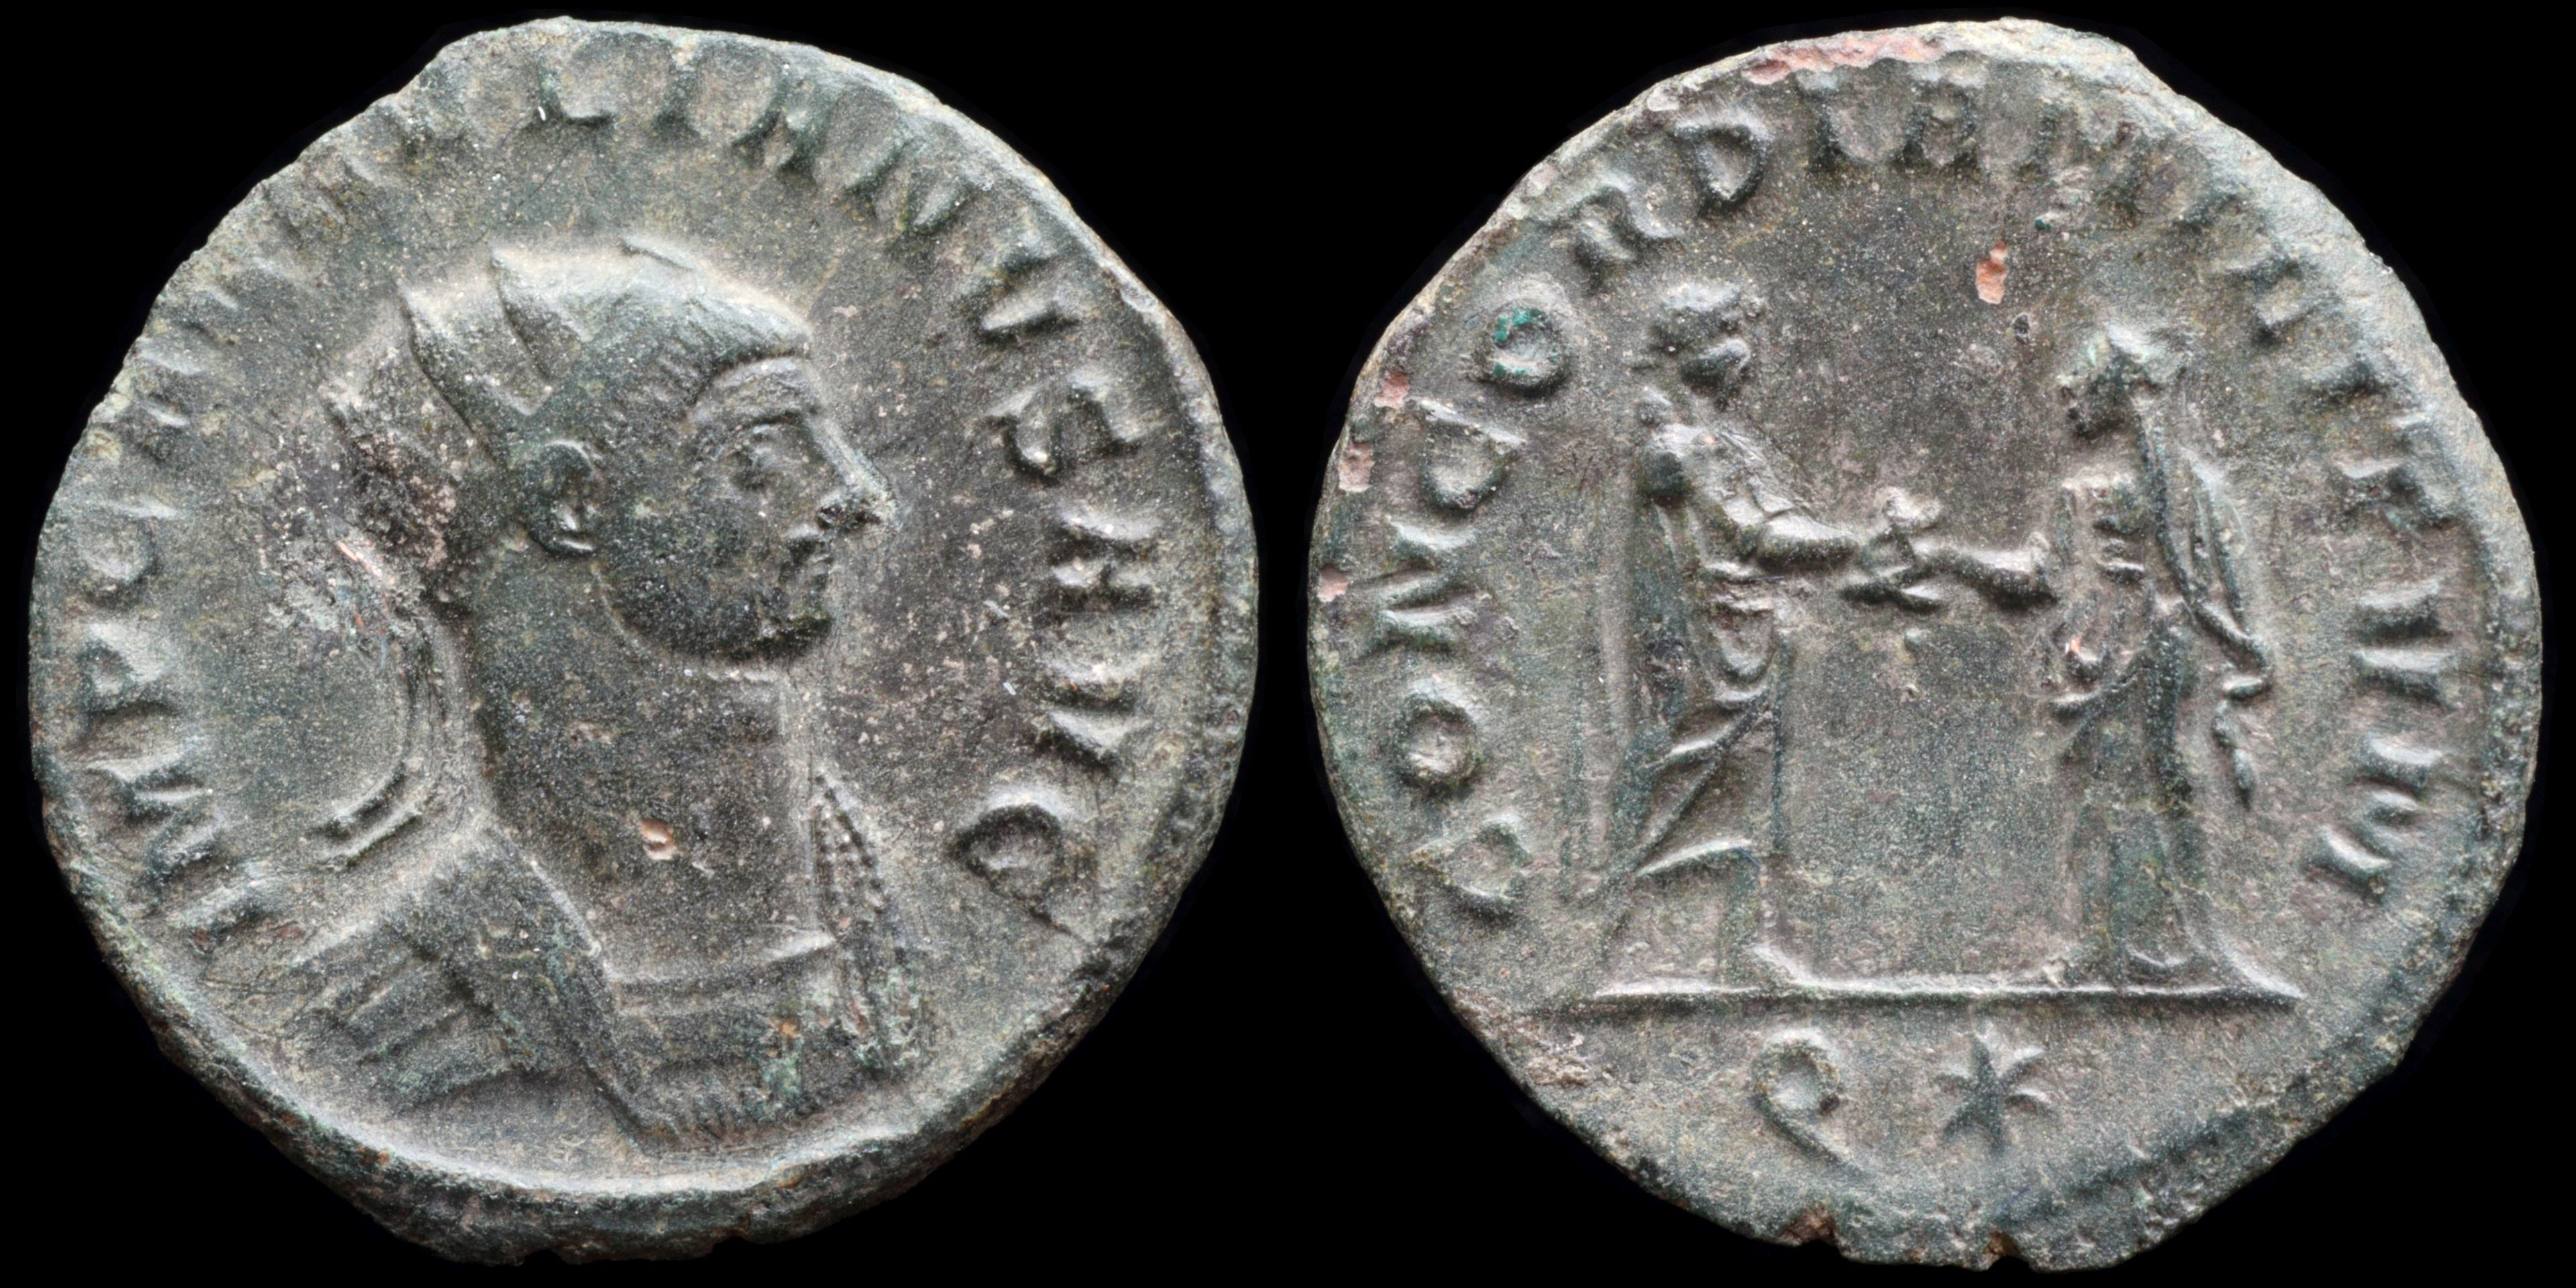 /Files/Images/Coinsite/CoinDB/630_Aurelian_Concordia.jpg